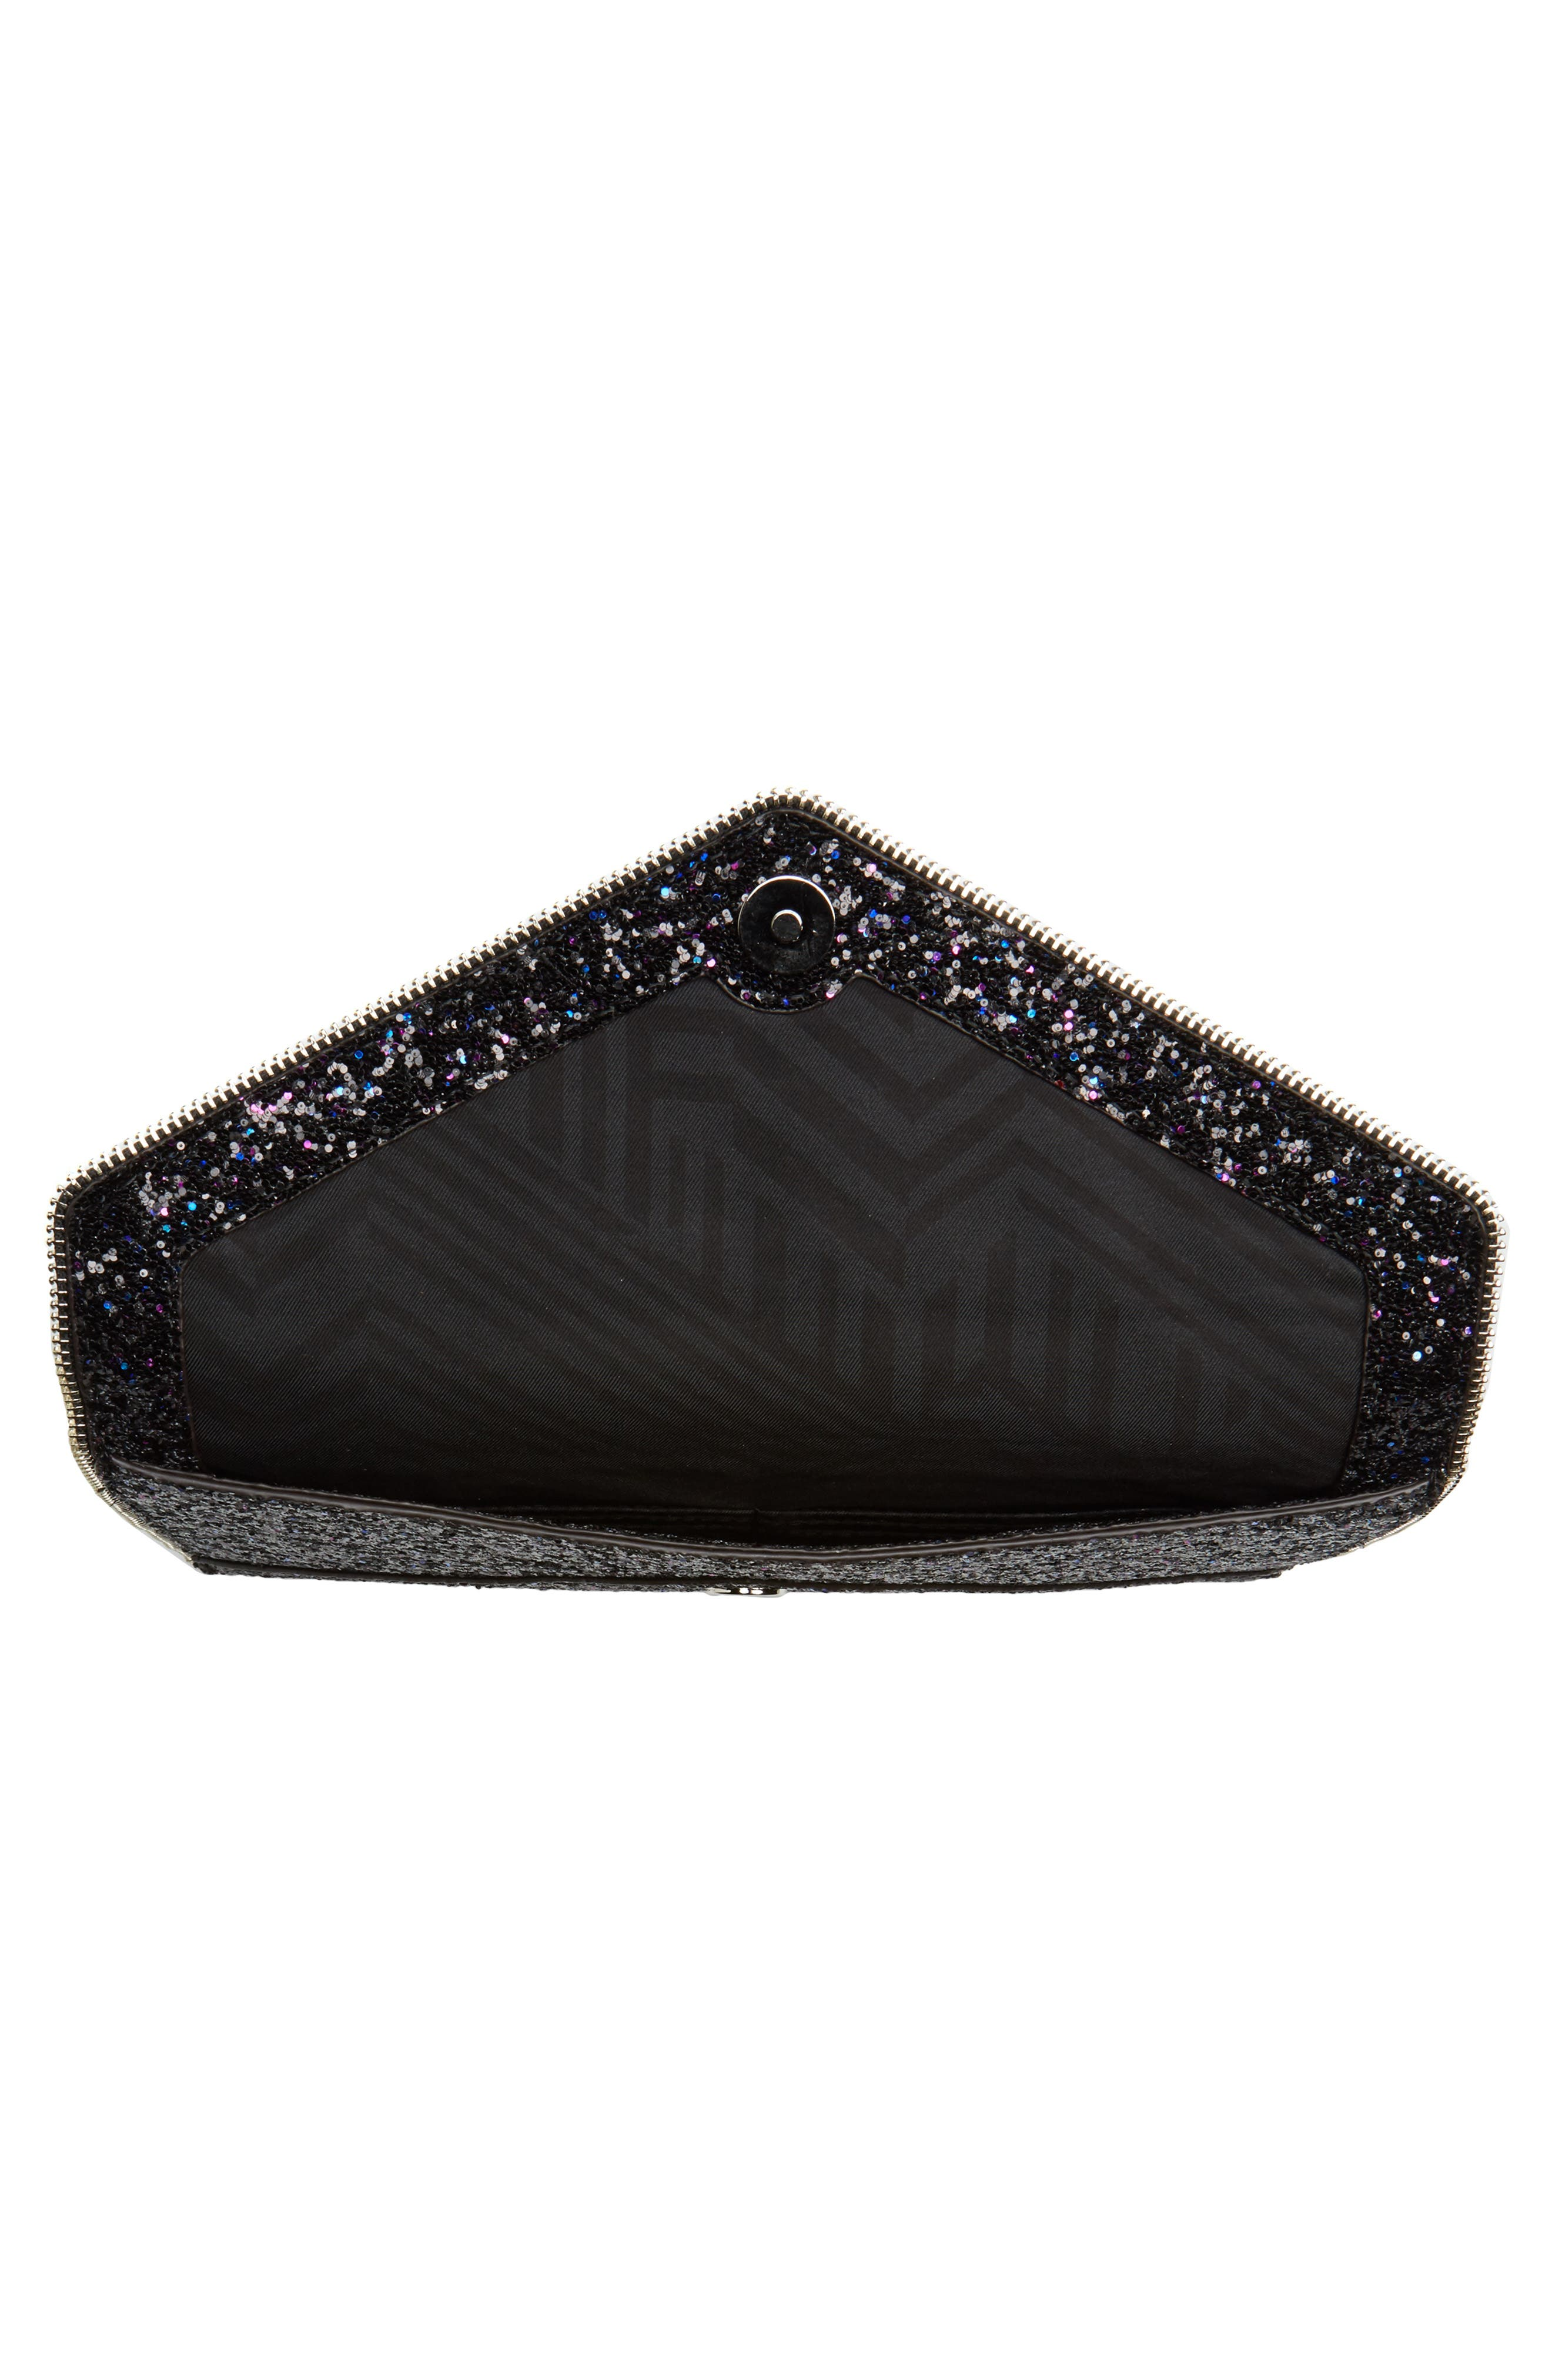 Leo Glitter Envelope Clutch,                             Alternate thumbnail 4, color,                             501